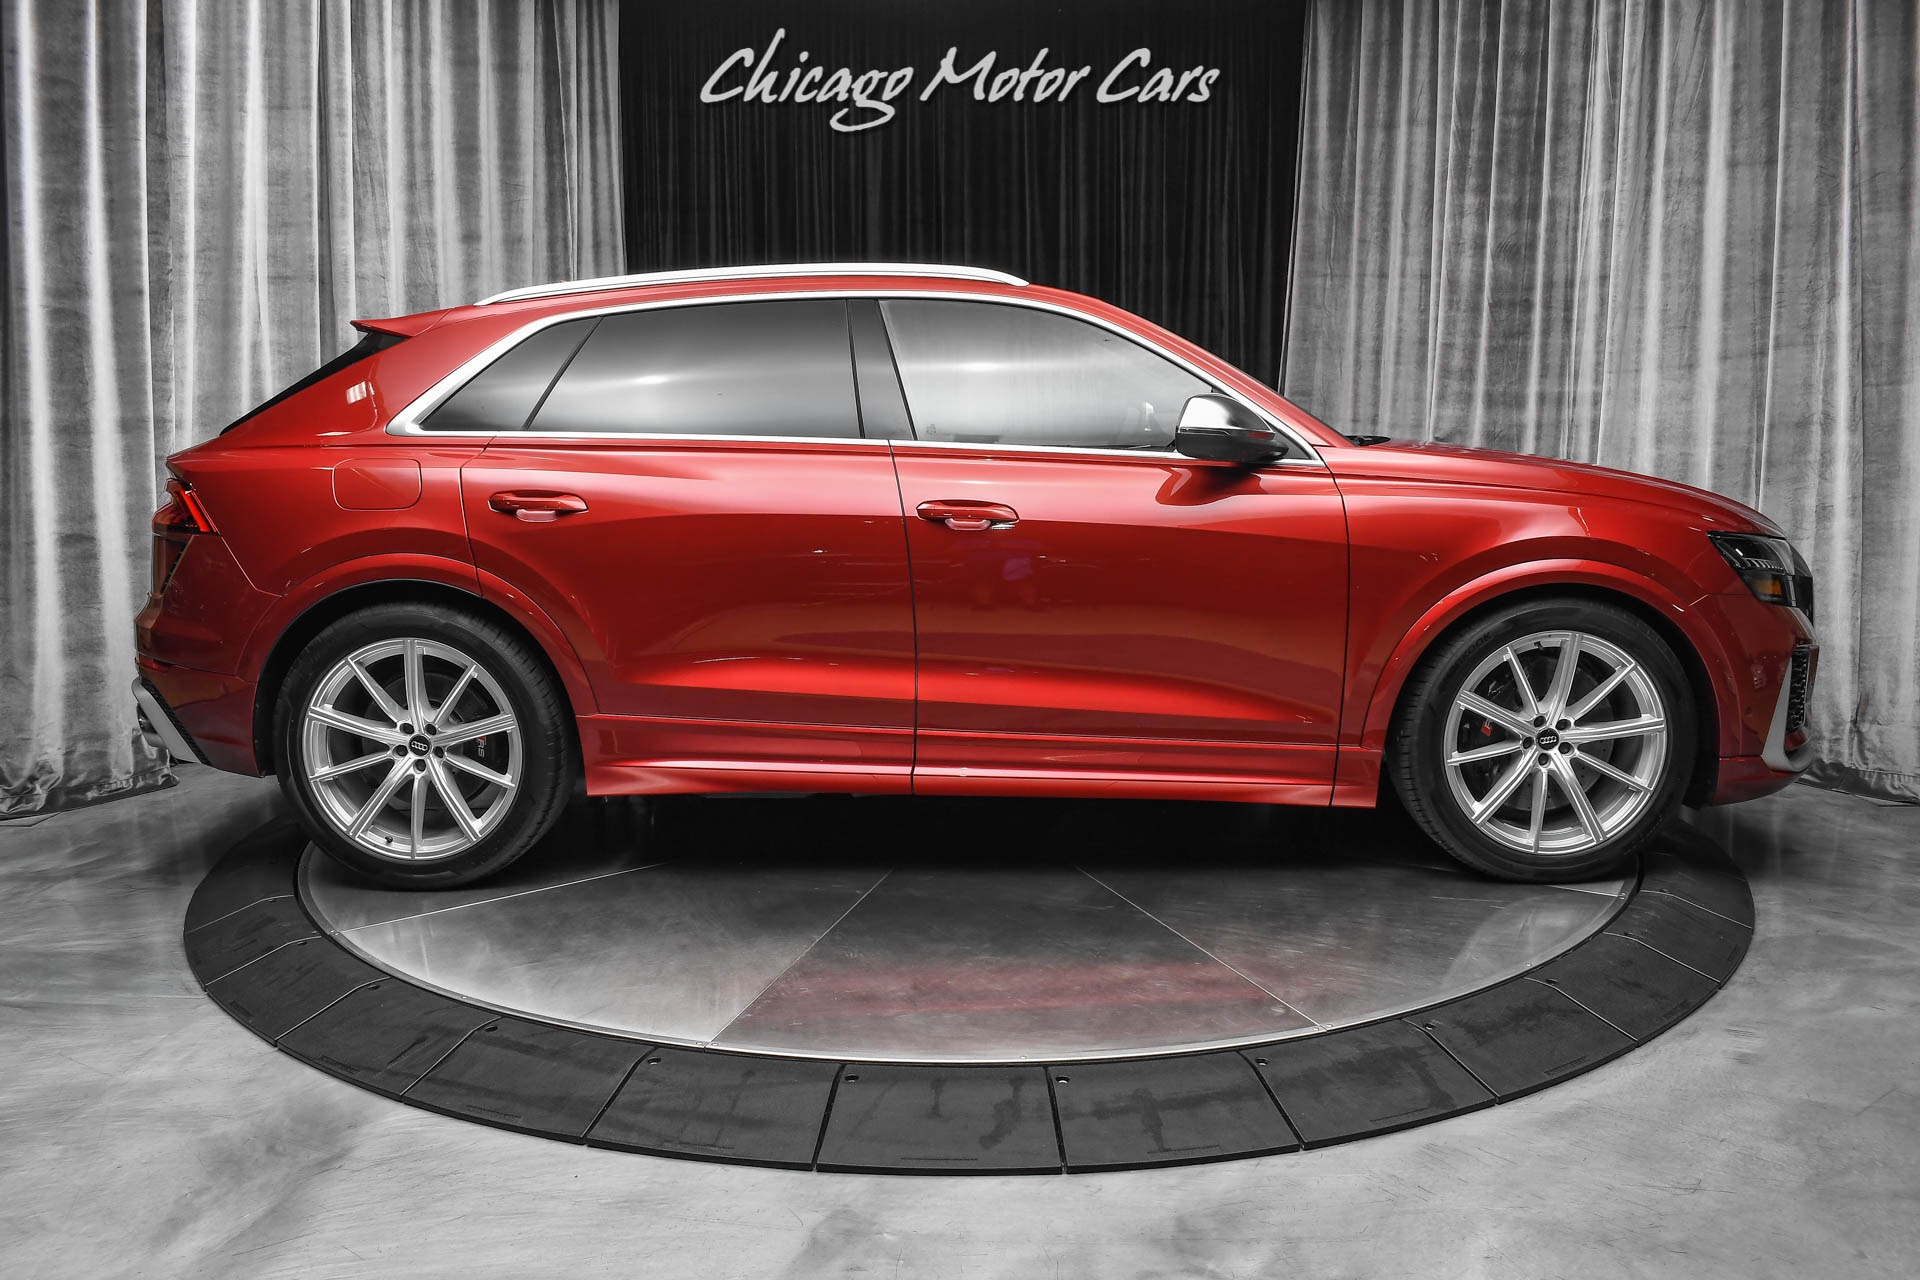 Used-2021-Audi-RSQ8-40T-quattro-RS-Design-Package-RARE-Matador-Red-Only-62-Miles